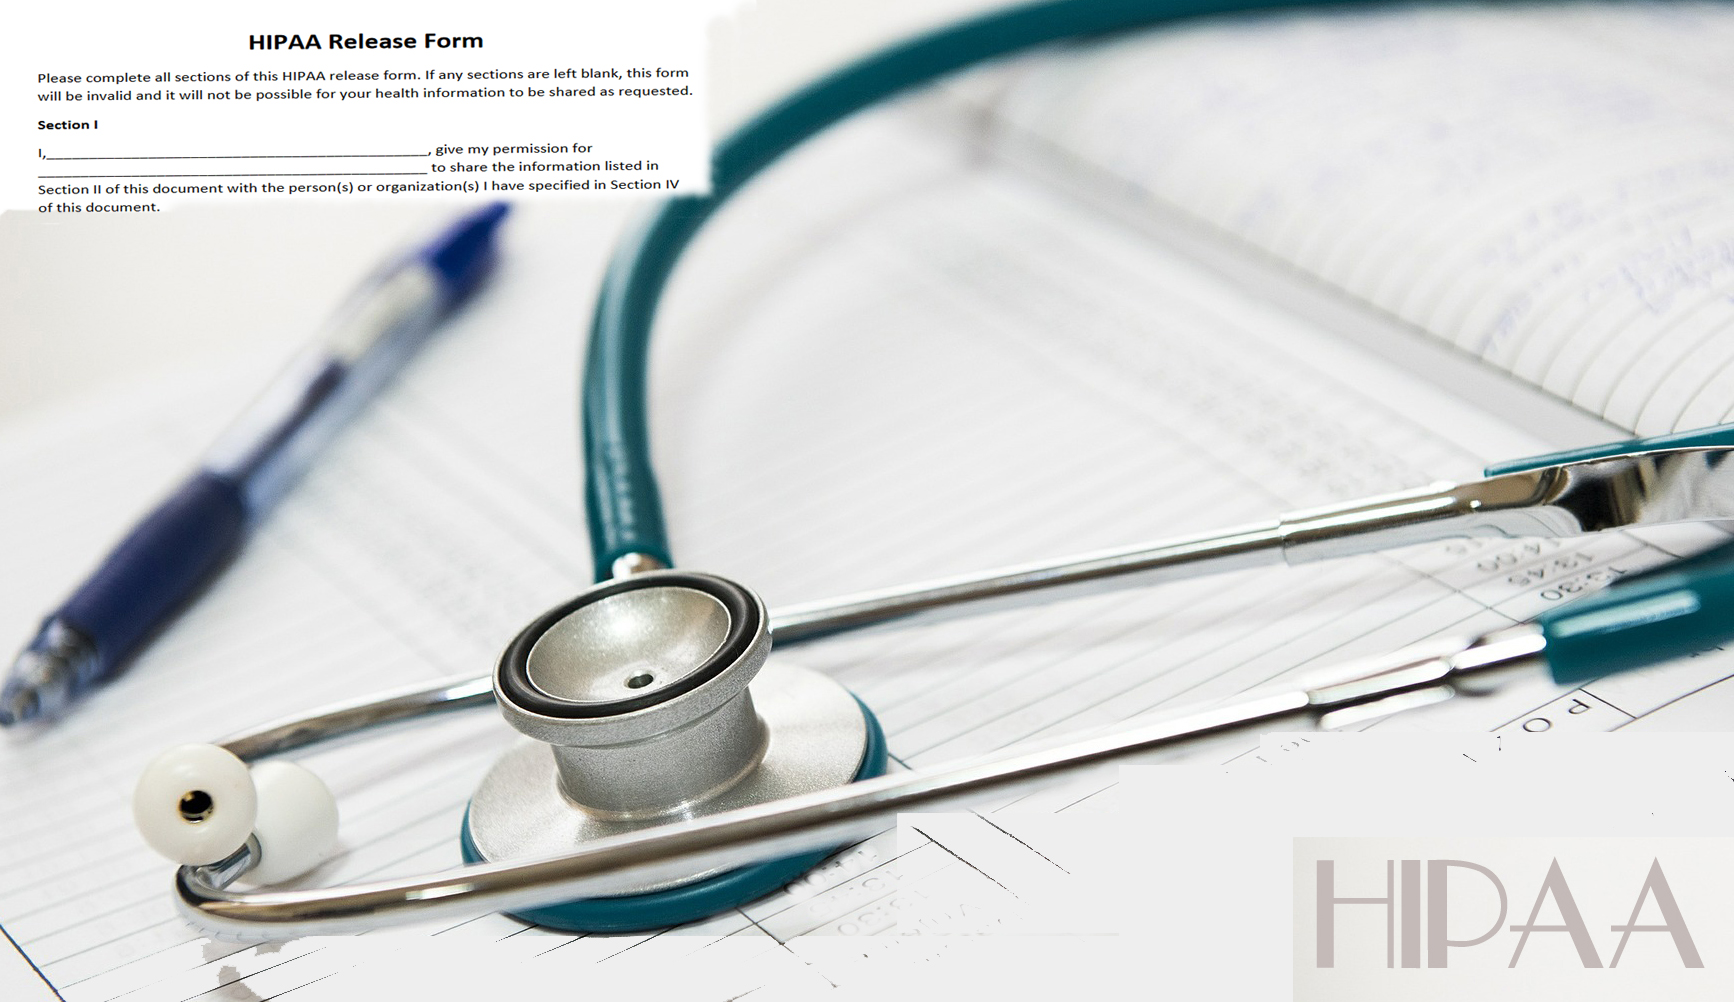 hipaa copy Image by Darko Stojanovic from Pixabay.jpg